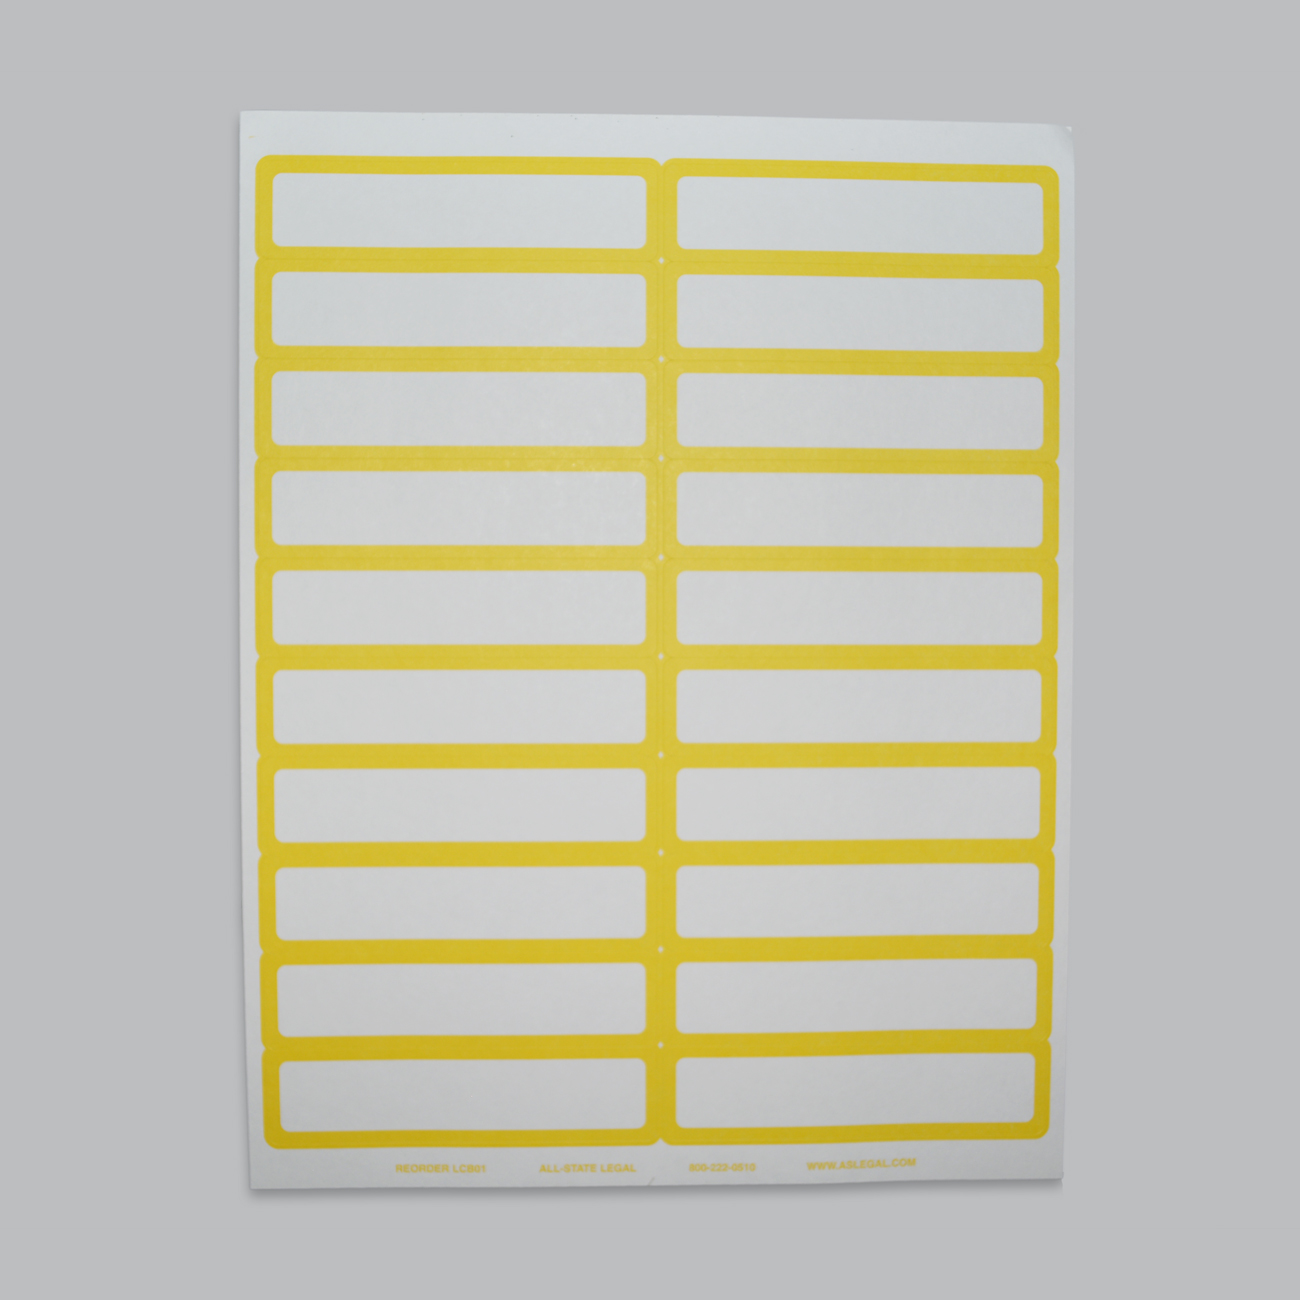 """File Folder Labels Label, 4"""" x 15/16"""", Yellow Self-Adhesive File Folder Laser Label, 20 Labels/Sheet, 500 Labels/PK (Matches Color-Bands)"""